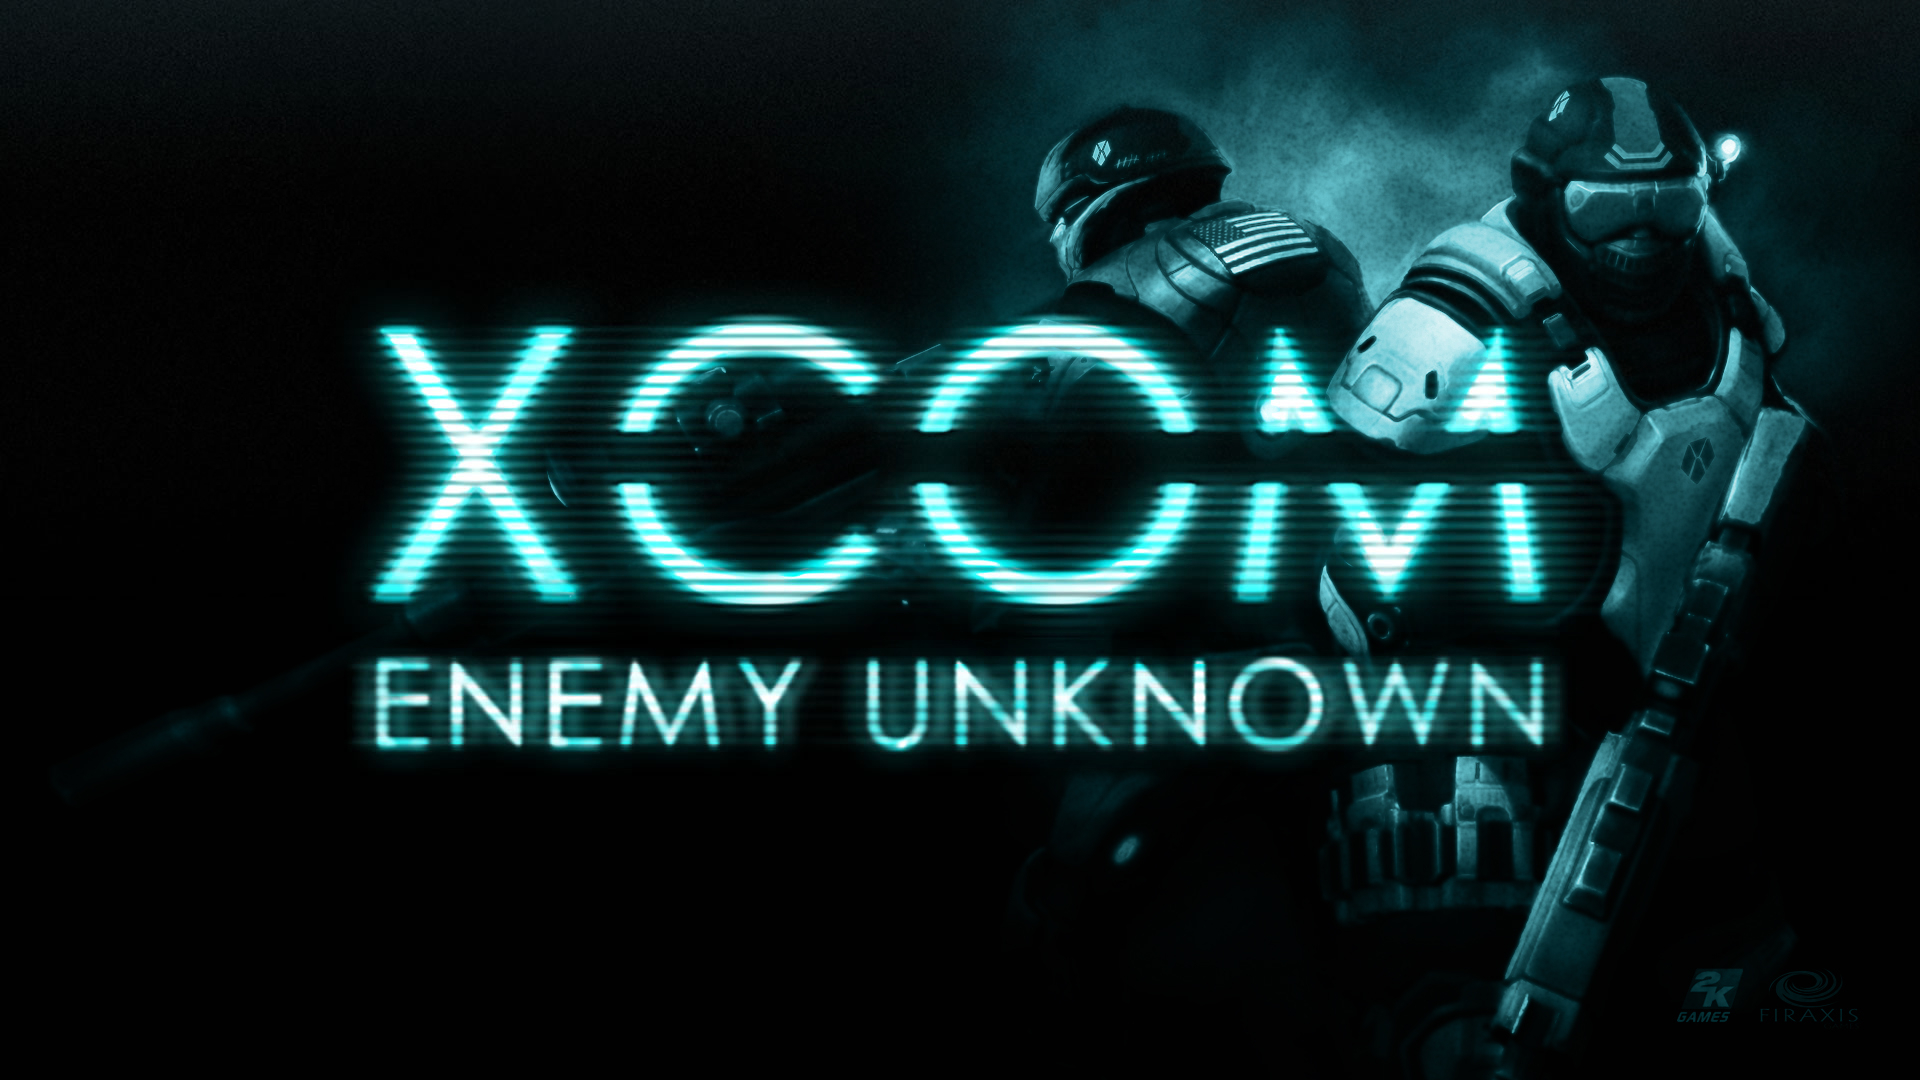 XCOM: Enemy Unknown is coming to Vita as Enemy Unknown ...